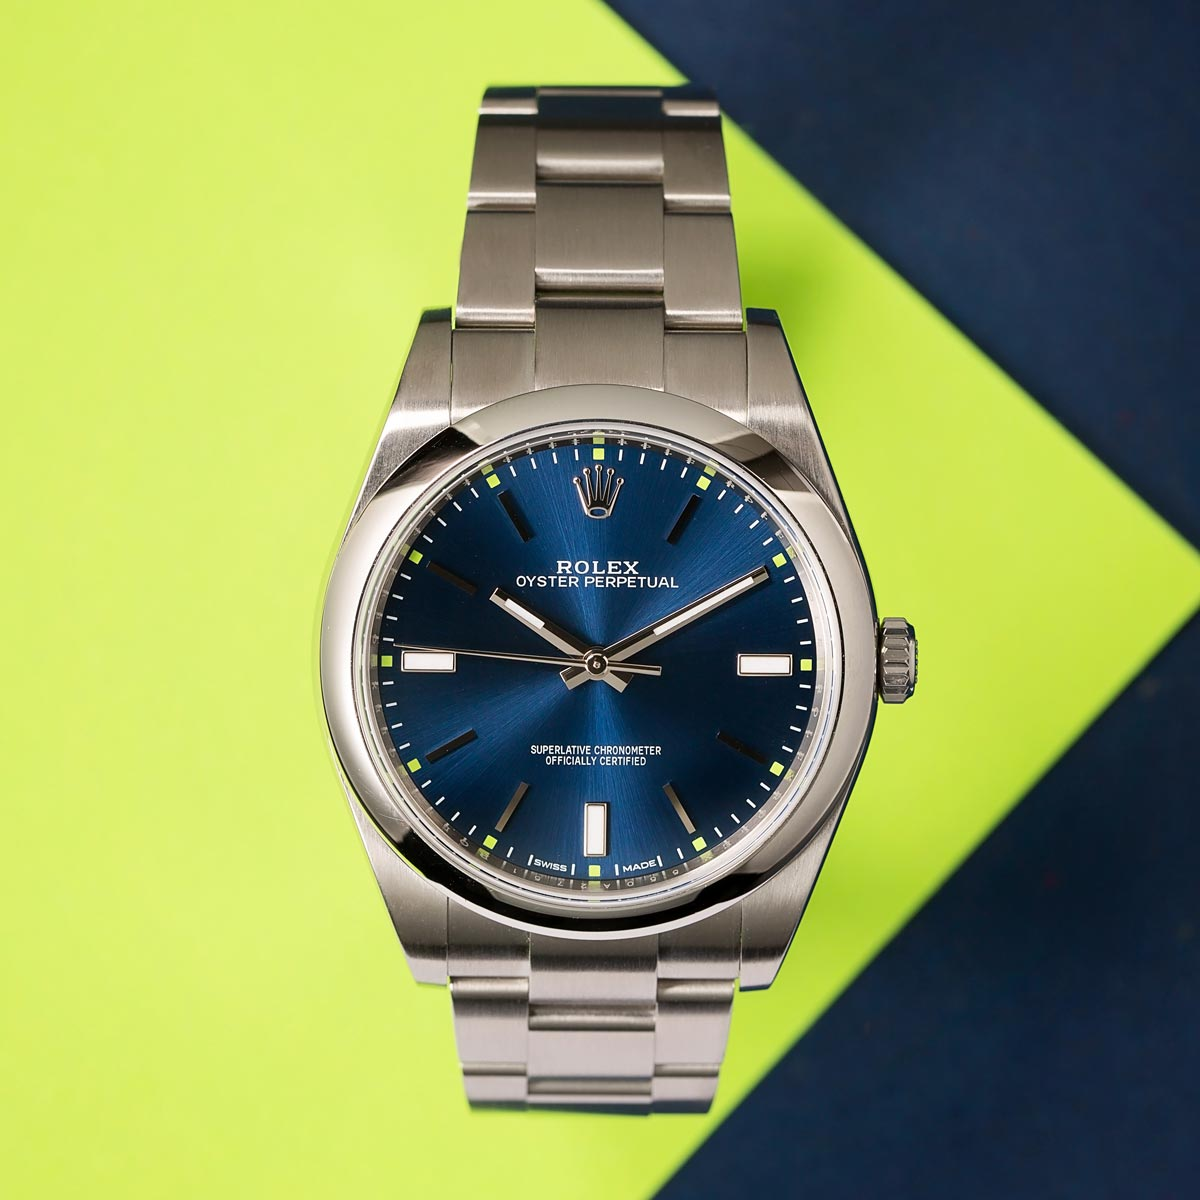 rolex giveaway rolex giveaway win the oyster perpetual 39 watch bob s 7387